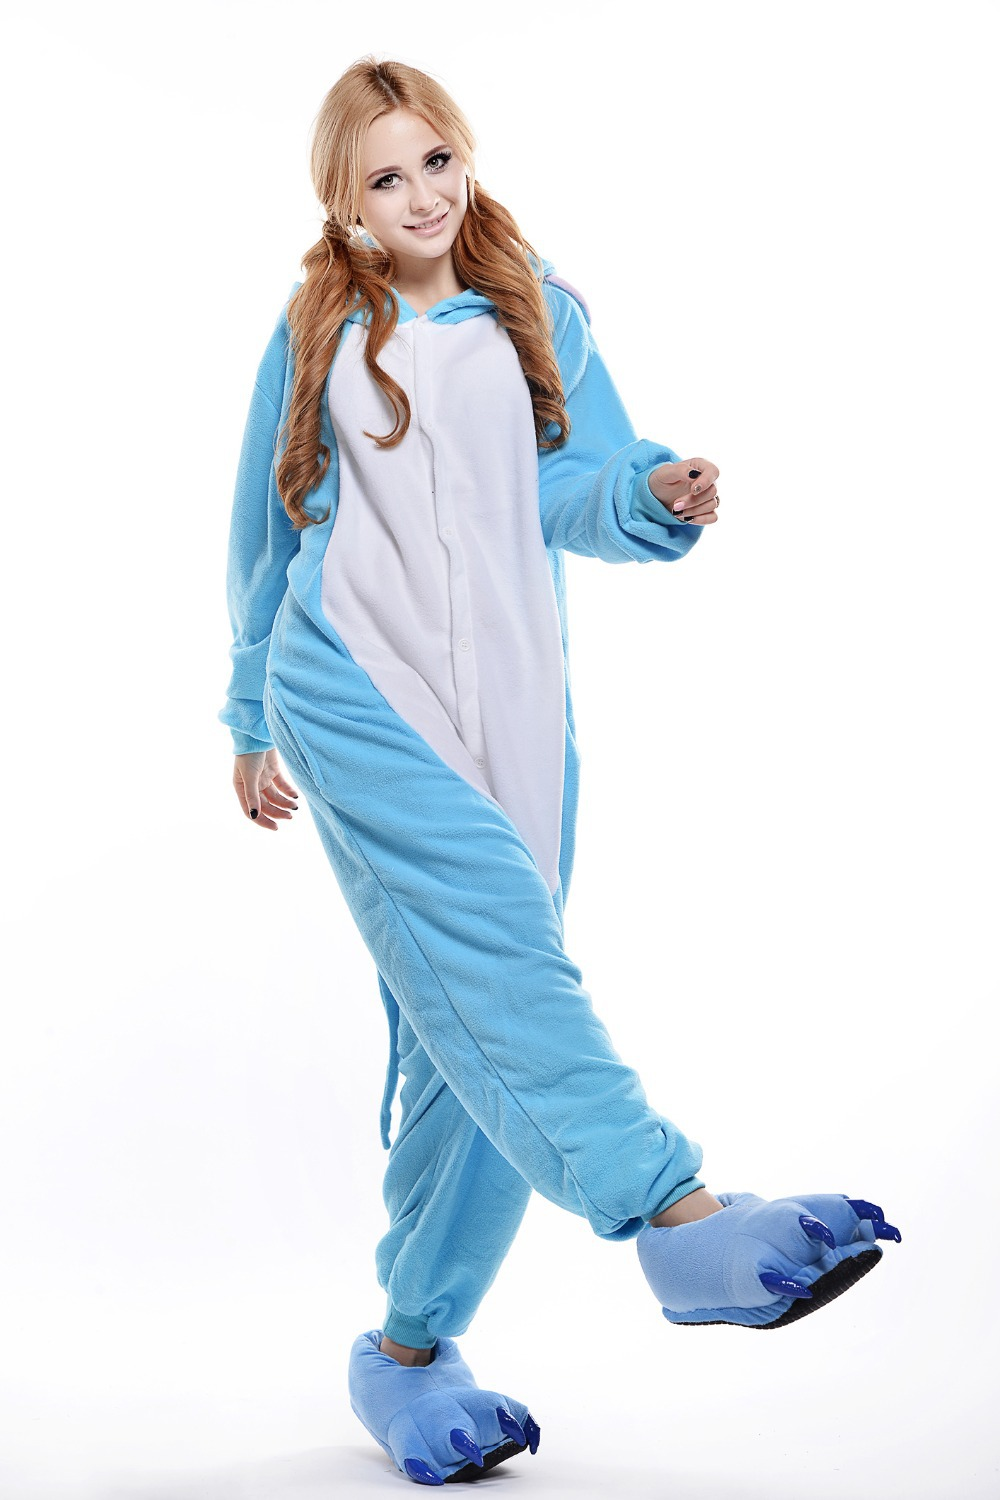 Shop for PINK L Adult Cute Unicorn Animal Onesie Pajama online at $ and discover fashion at truedfil3gz.gq Cheapest and Latest women & men fashion site including categories such as dresses, shoes, bags and jewelry with free shipping all over the world.